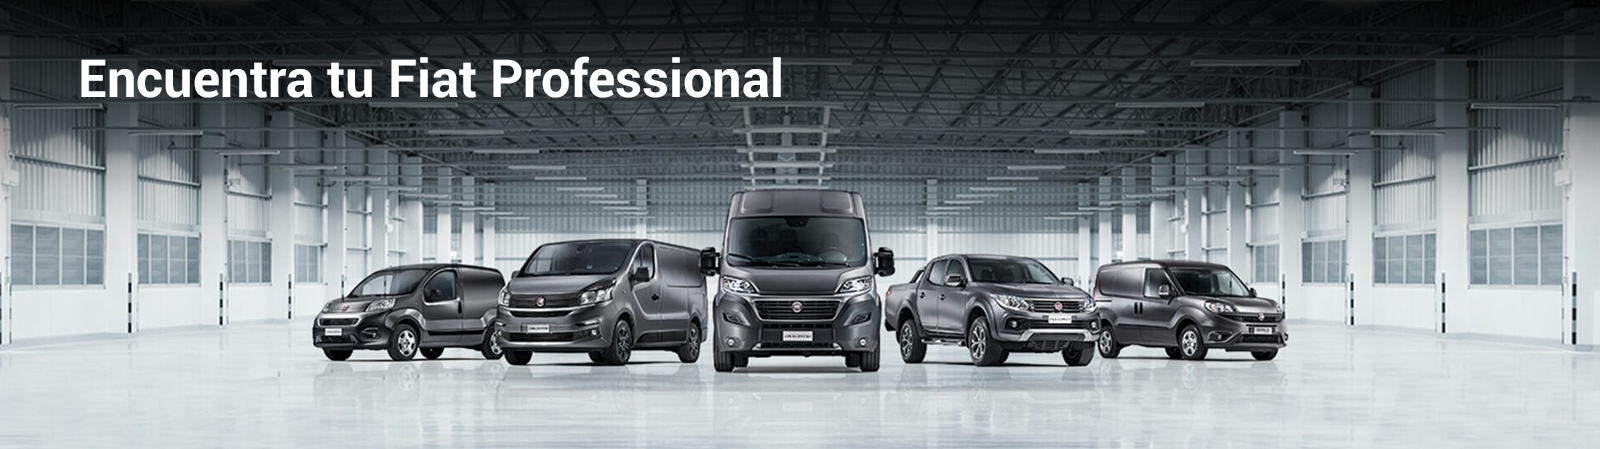 banner-fiat-professional